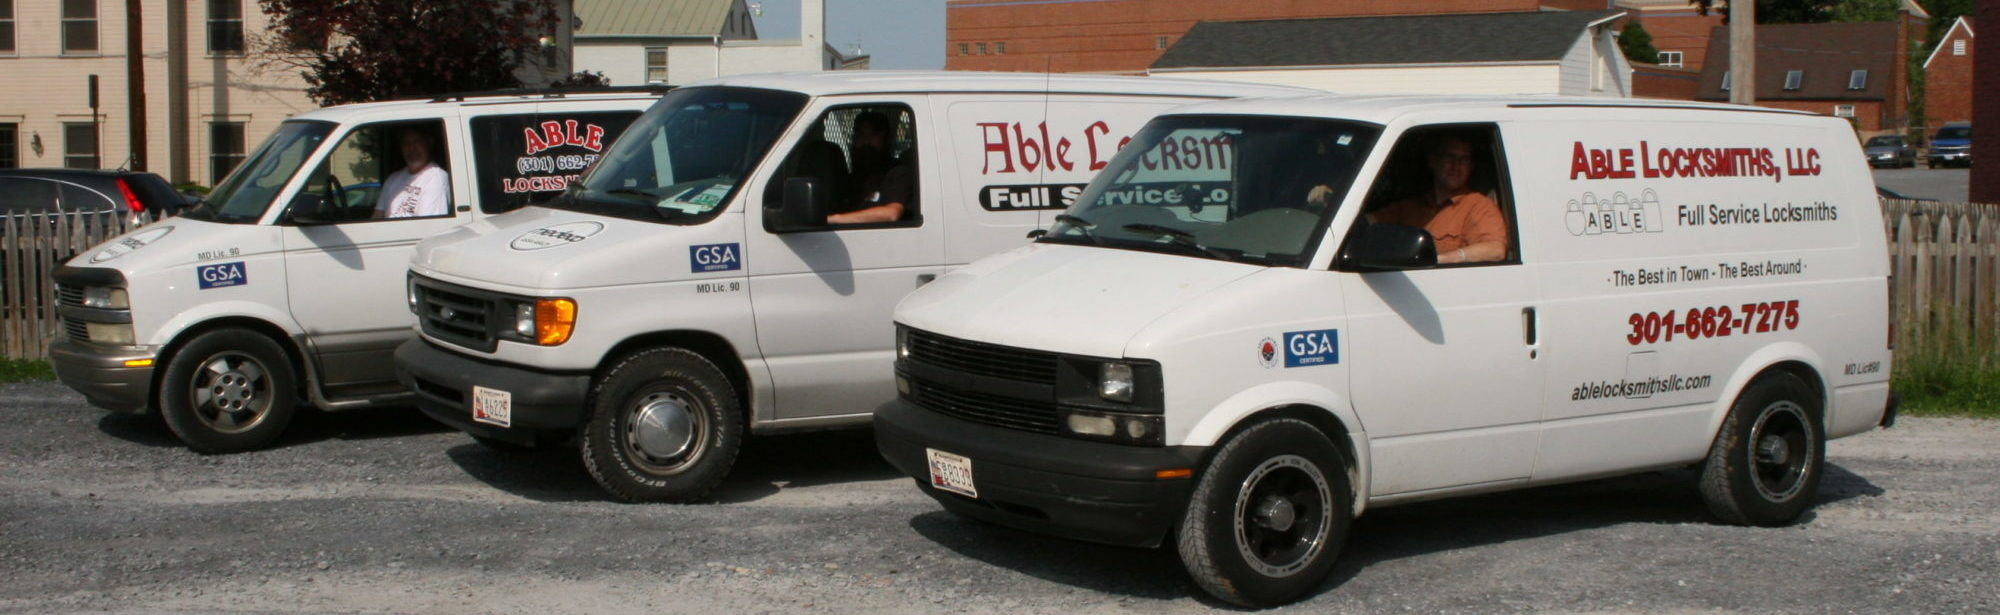 able-locksmiths-frederick-md